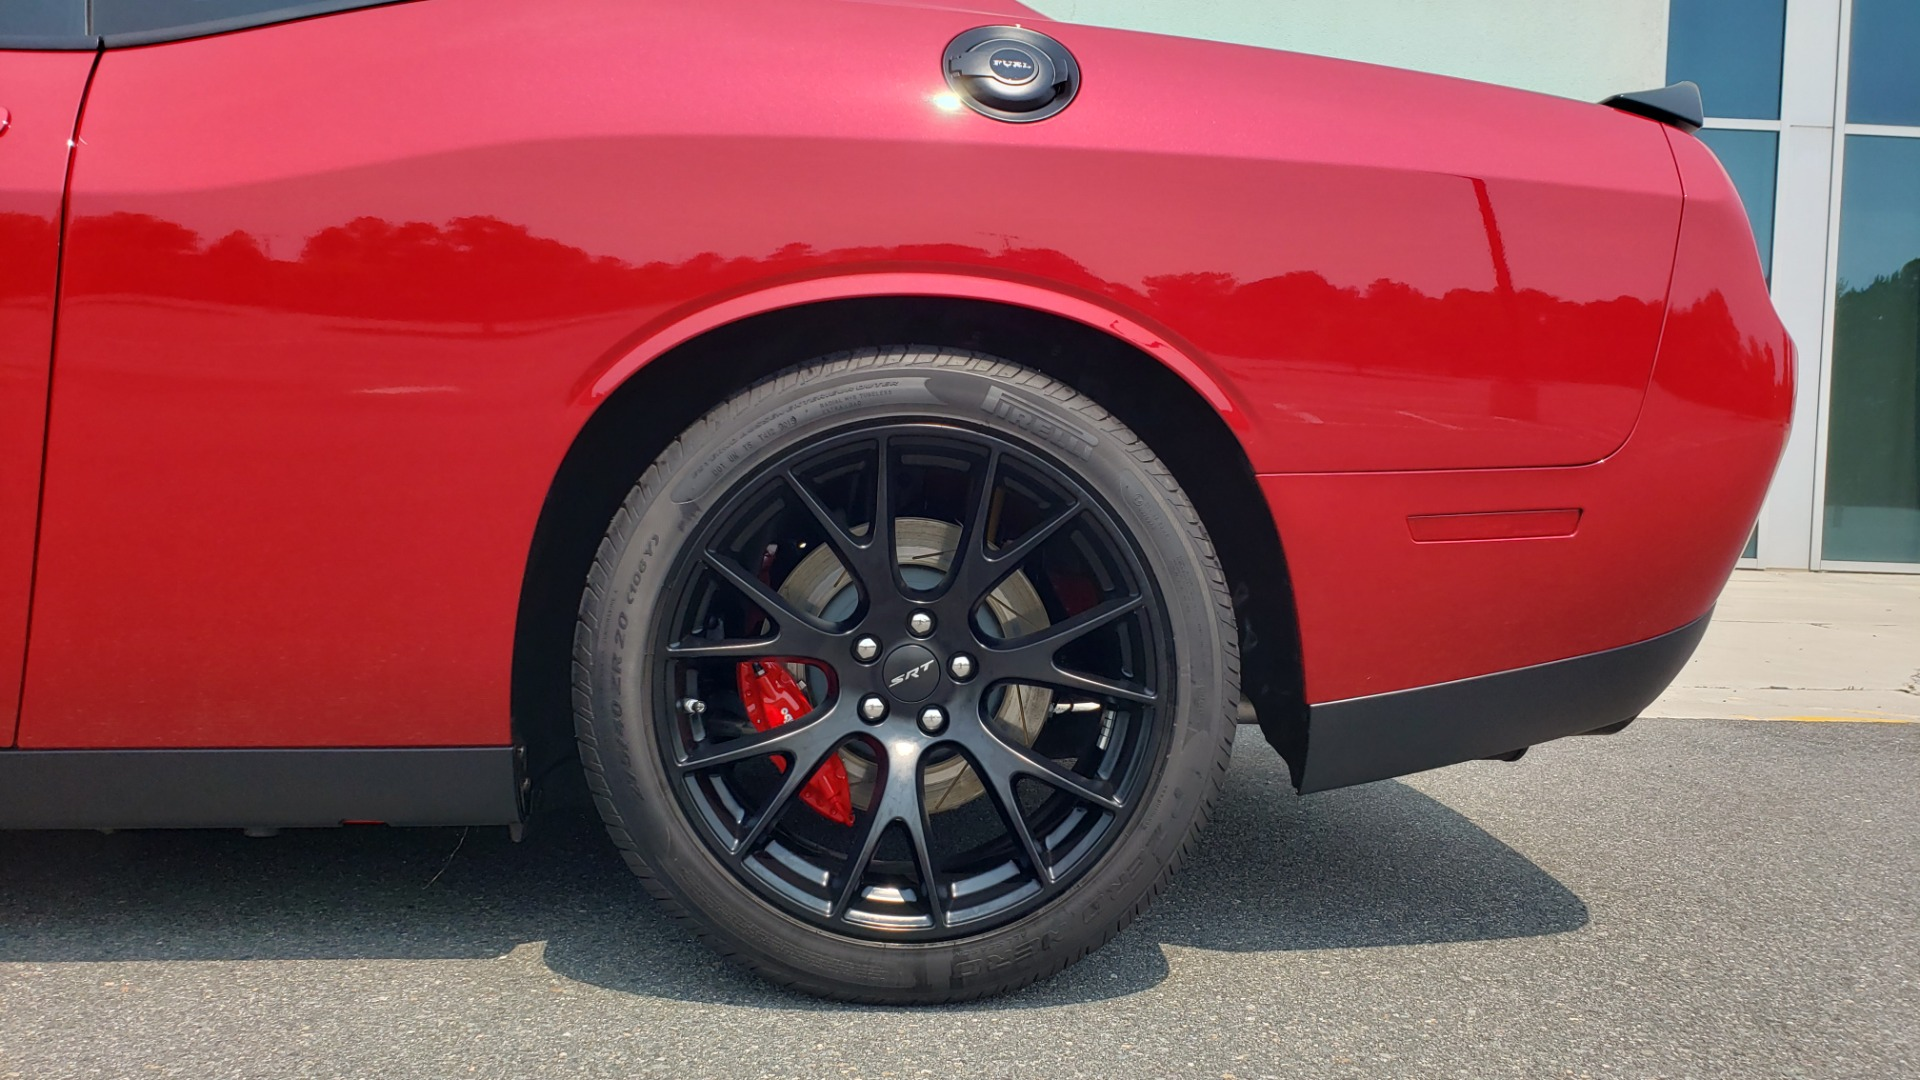 Used 2016 Dodge CHALLENGER SRT HELLCAT 707HP COUPE / AUTO / NAV / SUNROOF / H/K SND / REARVIEW for sale $60,995 at Formula Imports in Charlotte NC 28227 80